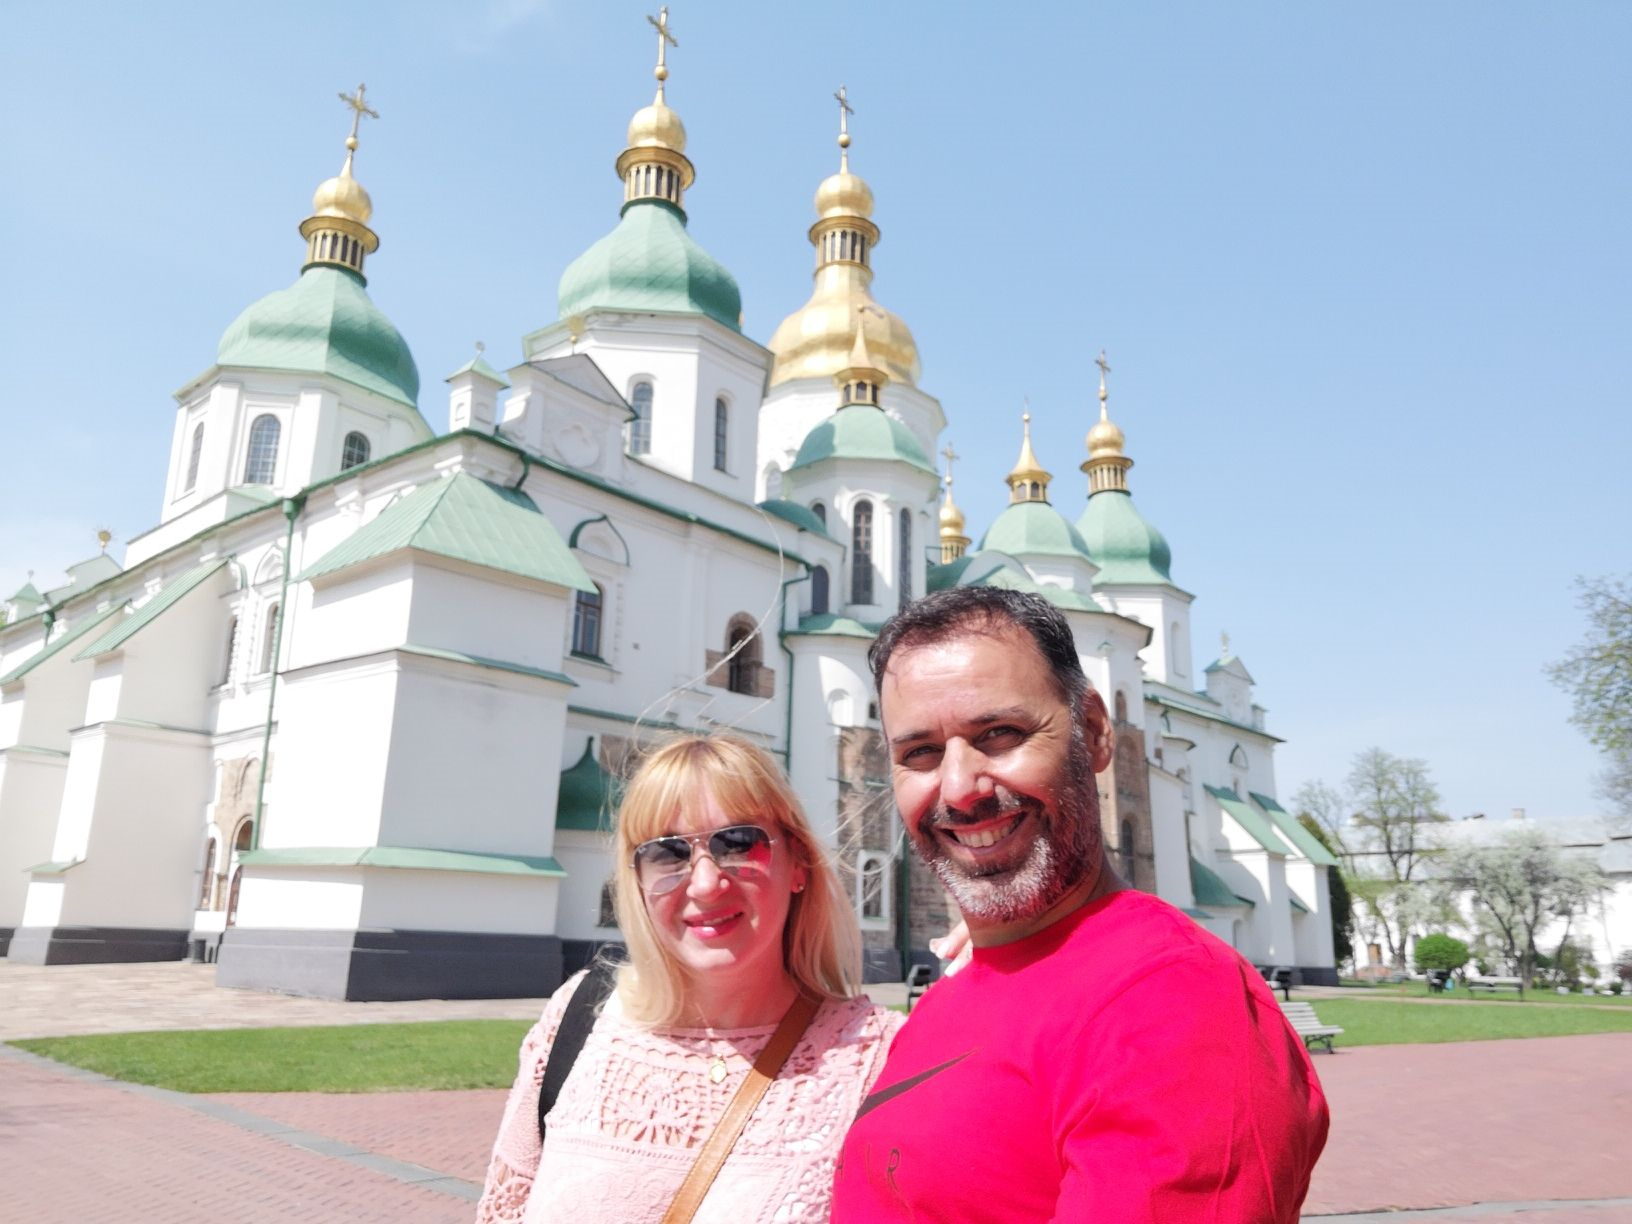 Flavia and José in front of a church in Kyiv